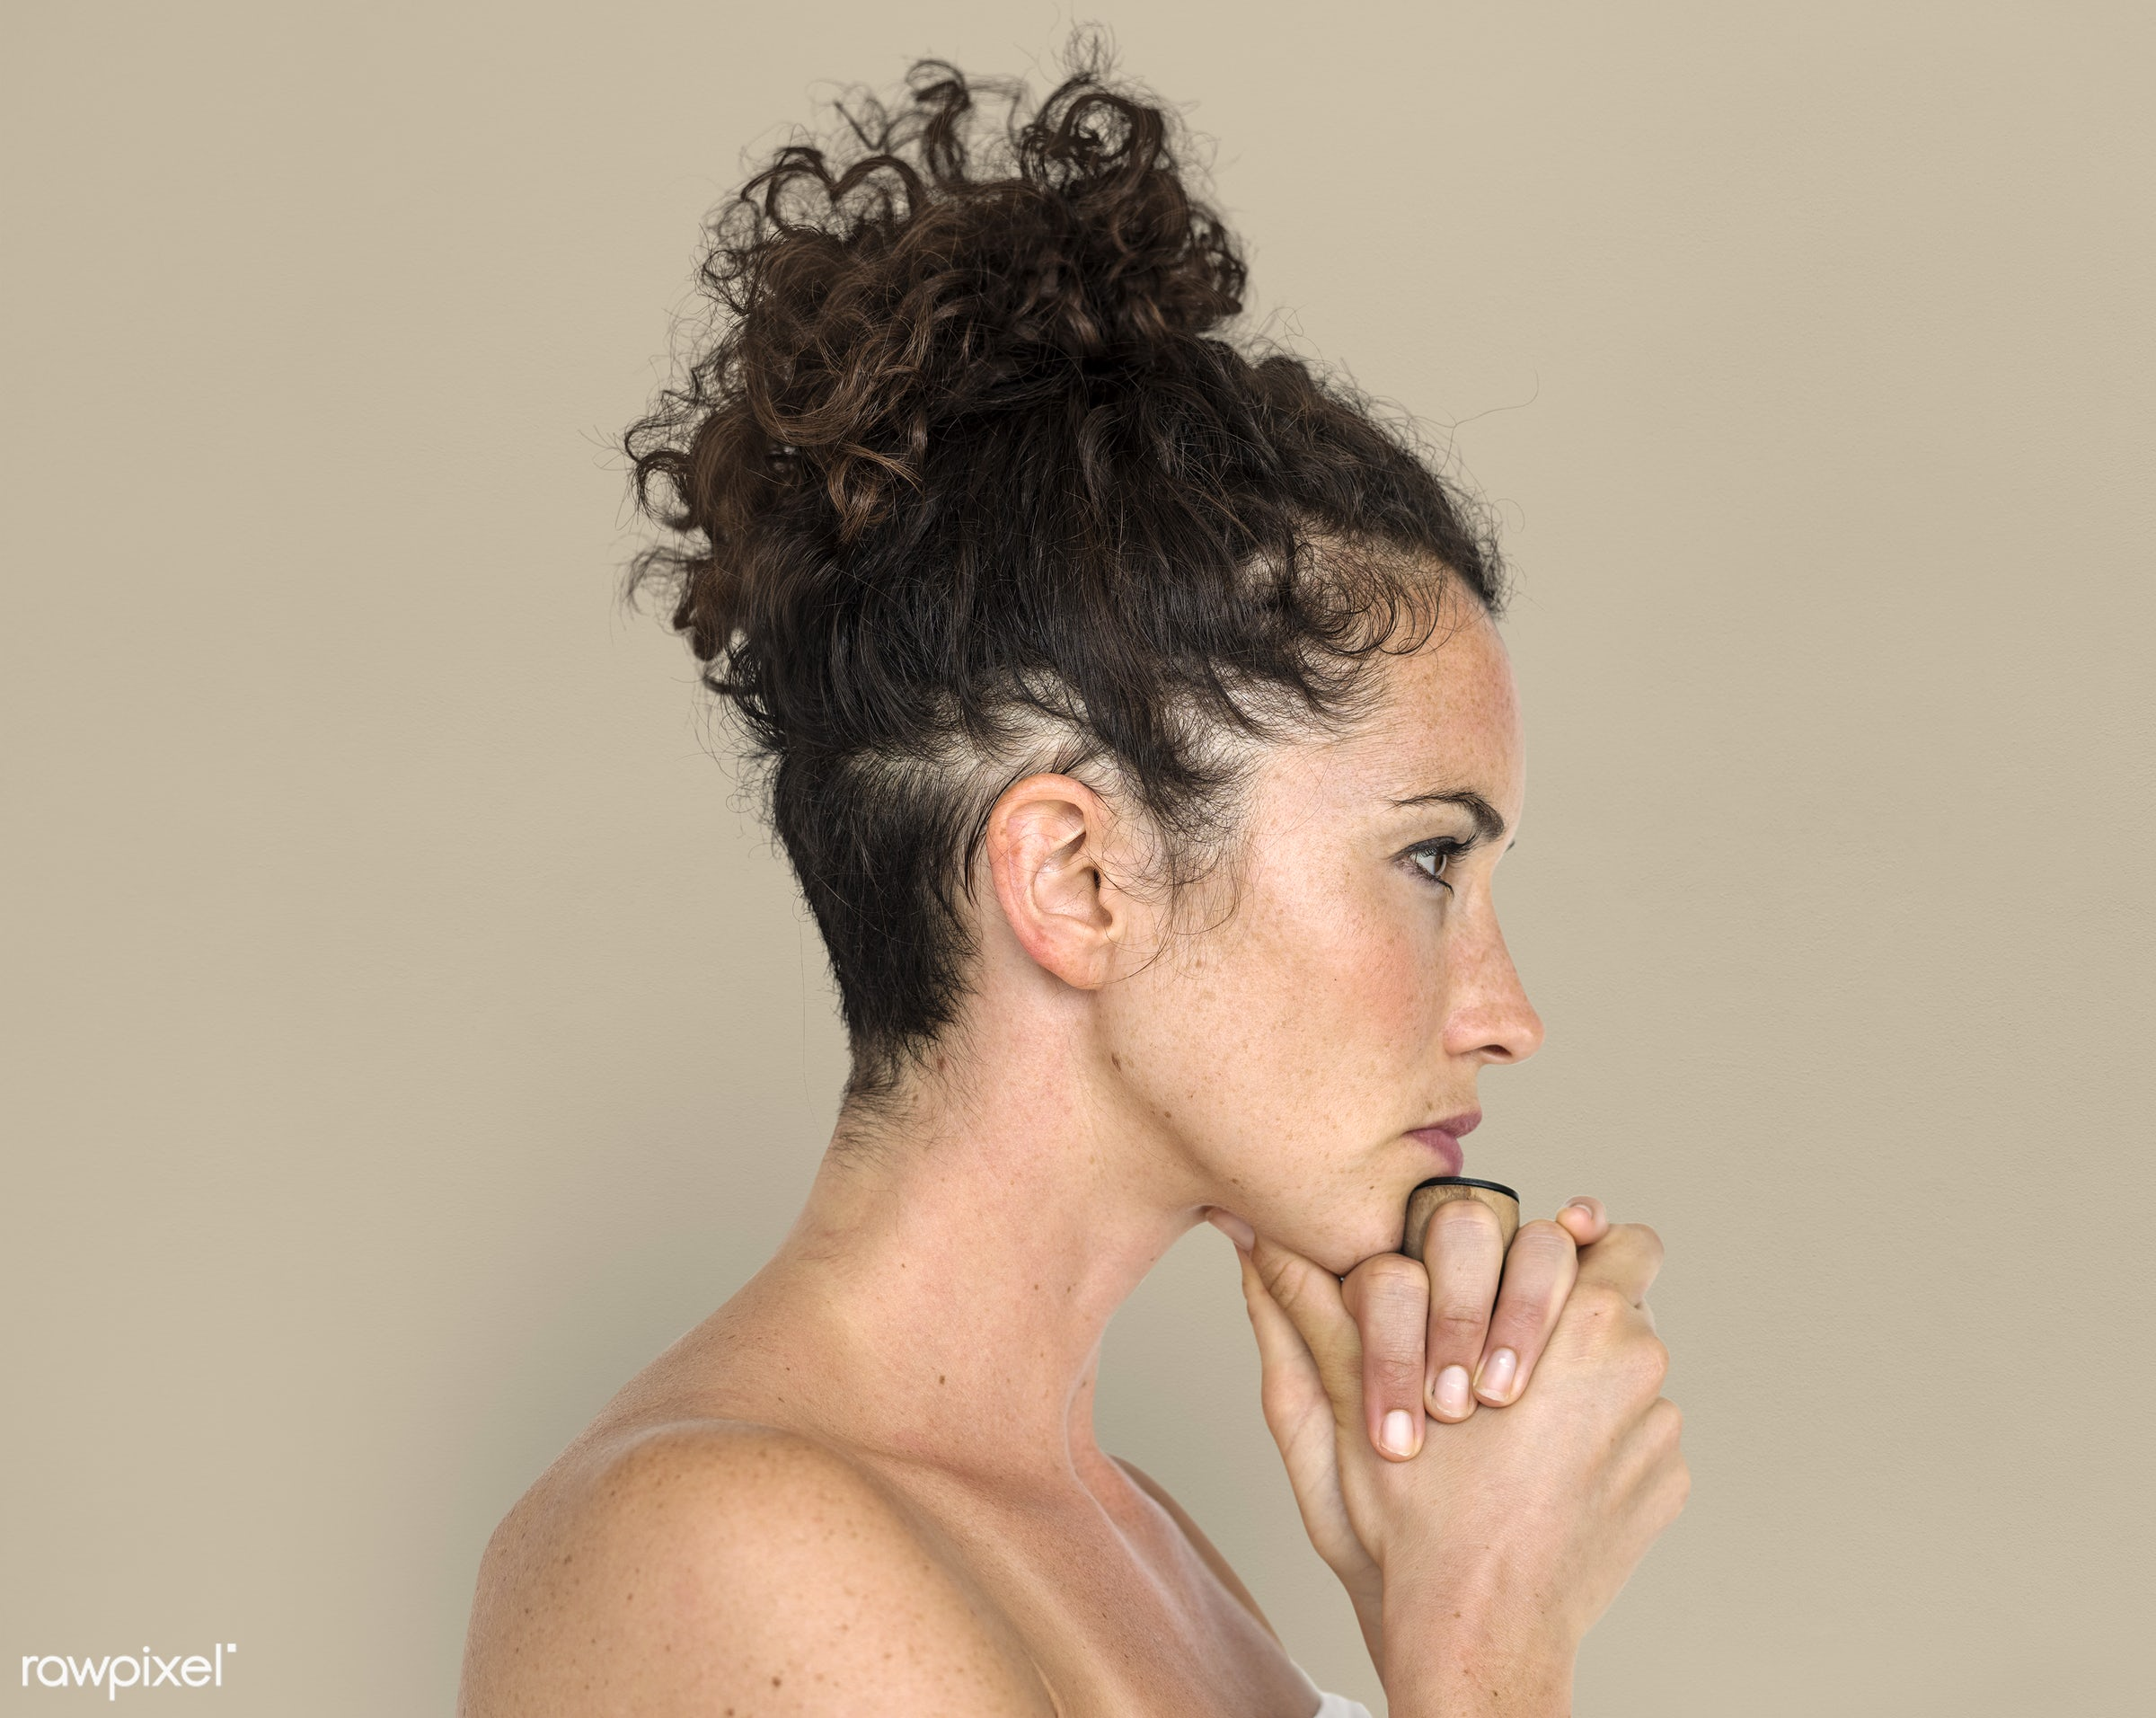 expression, studio, face, person, simple, people, caucasian, face expression, pose, solo, side, hands, woman, attractive,...